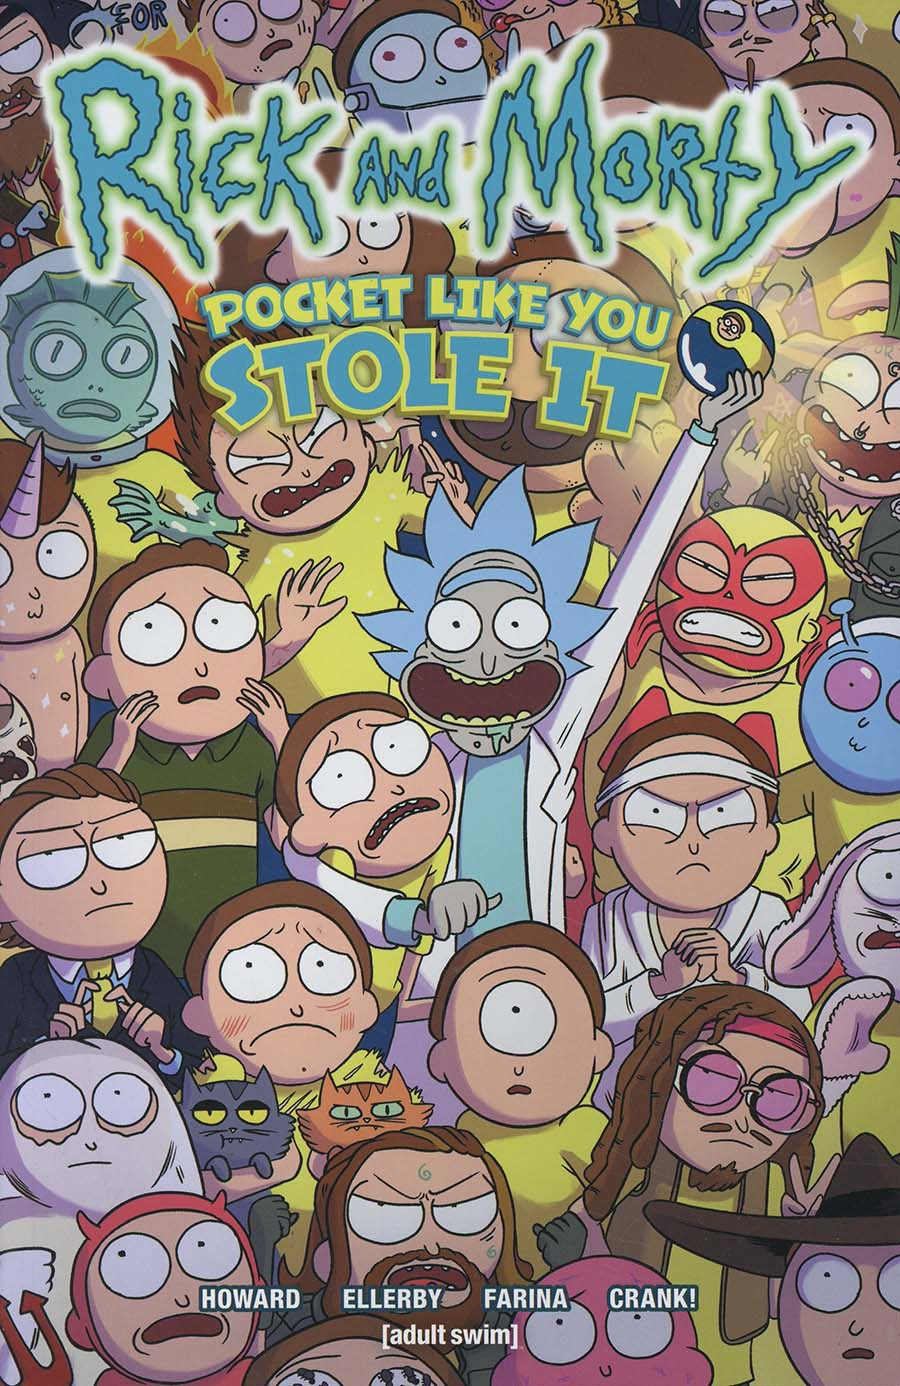 Rick And Morty Pocket Like You Stole It TP